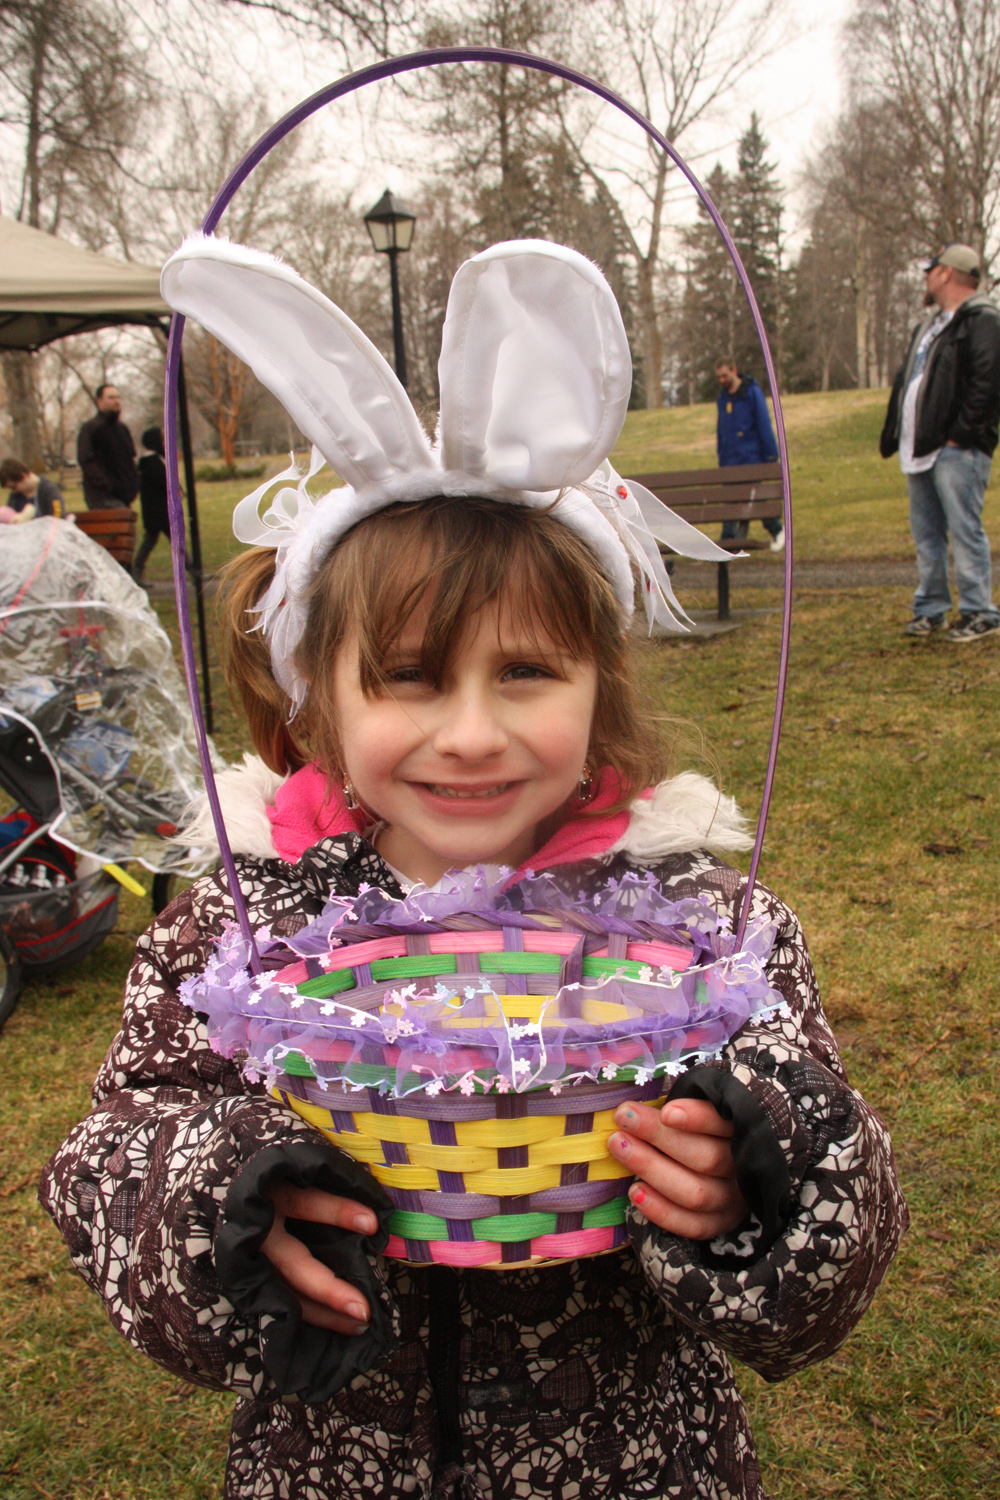 Rae Giergr, 6, has her basket and bunny ears ready to find the best eggs at Saturday's Easter Egg Hunt at Fort George Park. The event included games, mascots and prizes. Teresa MALLAM/Free Press